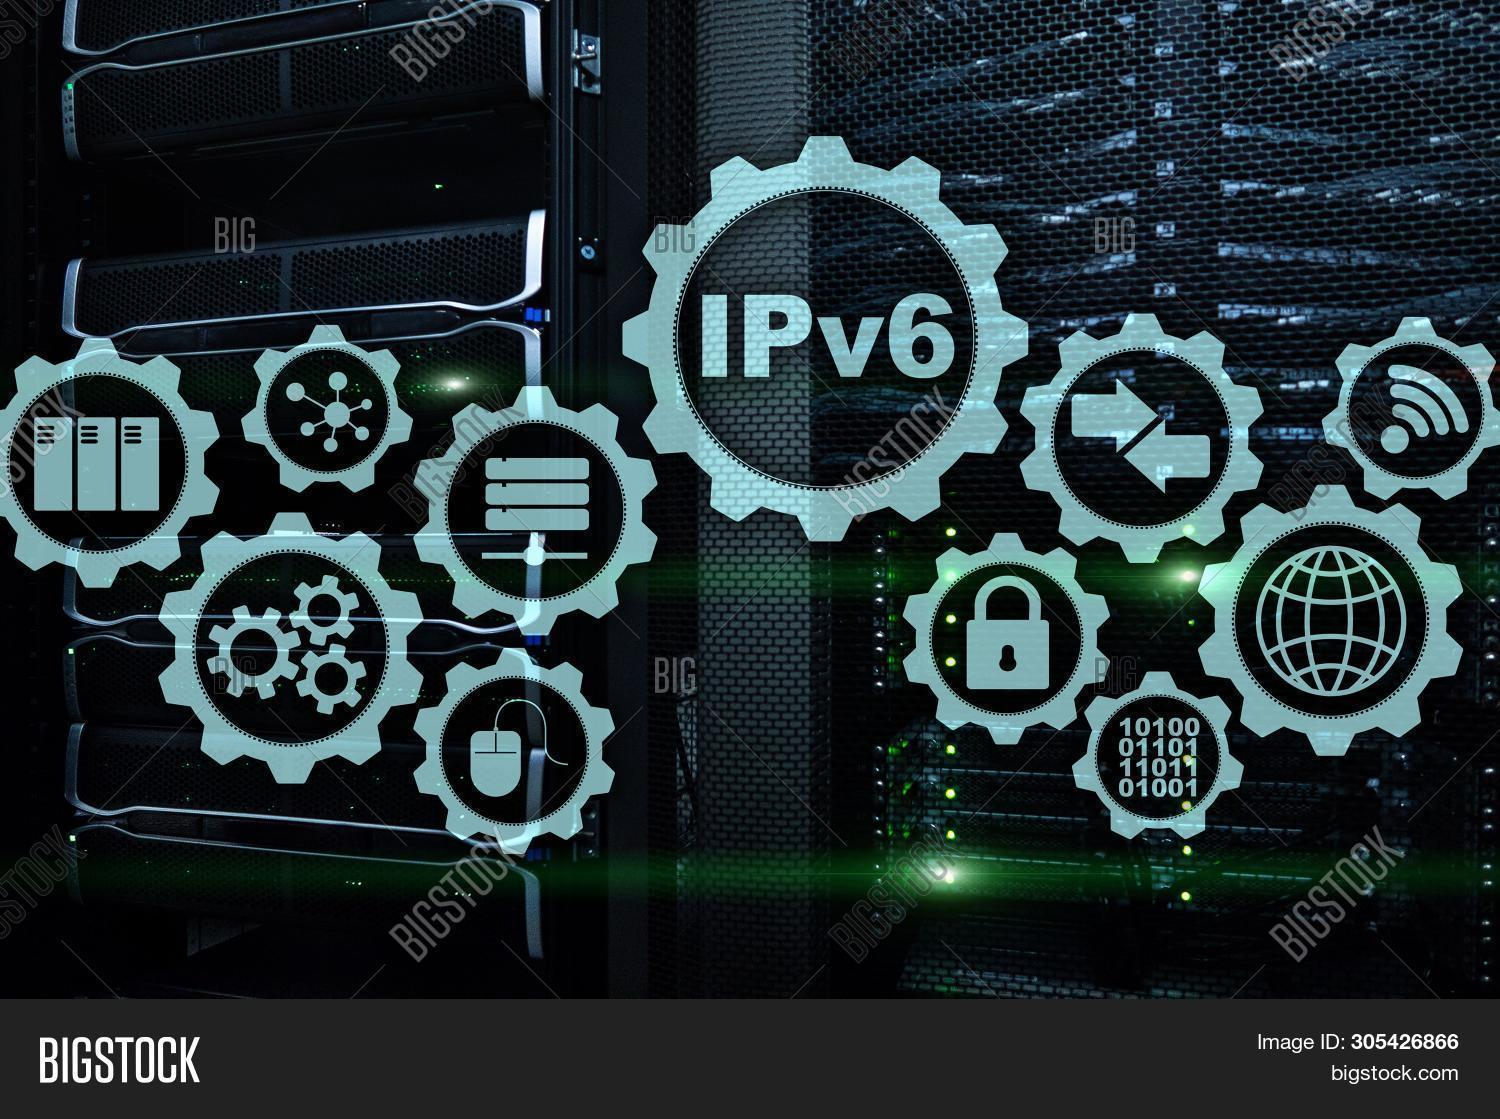 Ipv6 Internet Protocol On Server Room Background. Business Technology Internet And Network Concept.